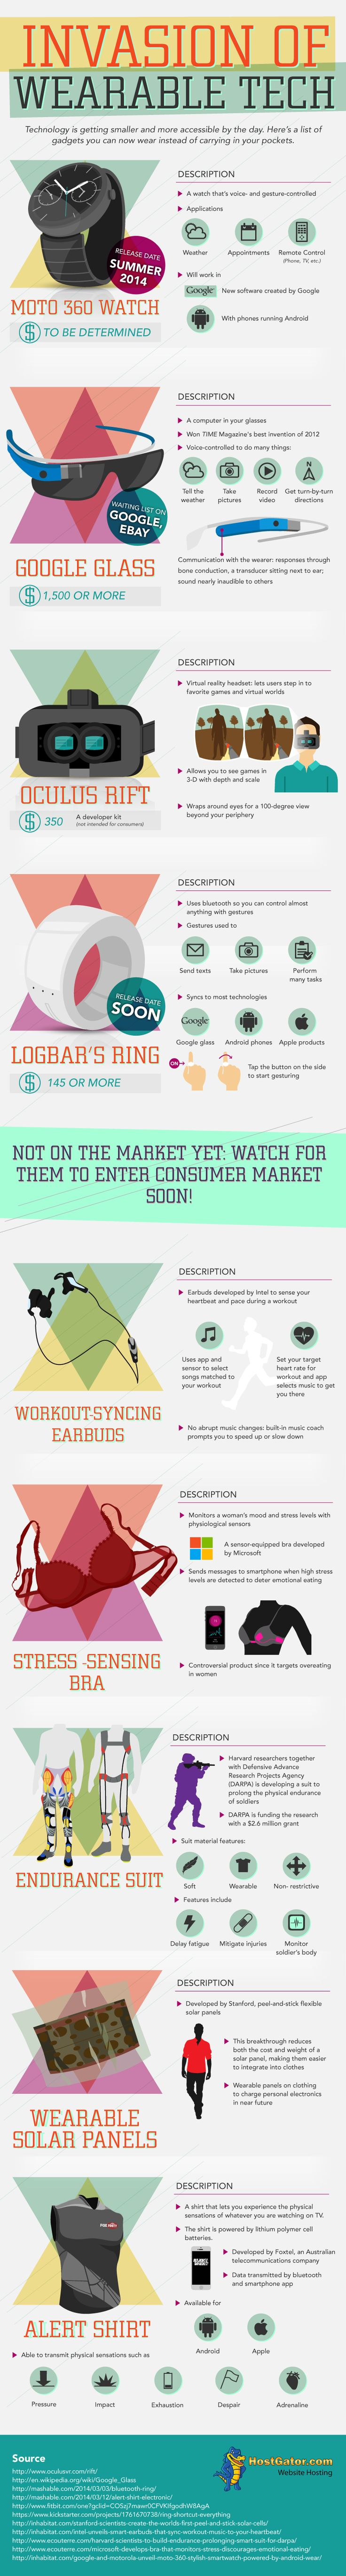 Invasion of Wearable Tech  #WearableTech #Technology #infographic